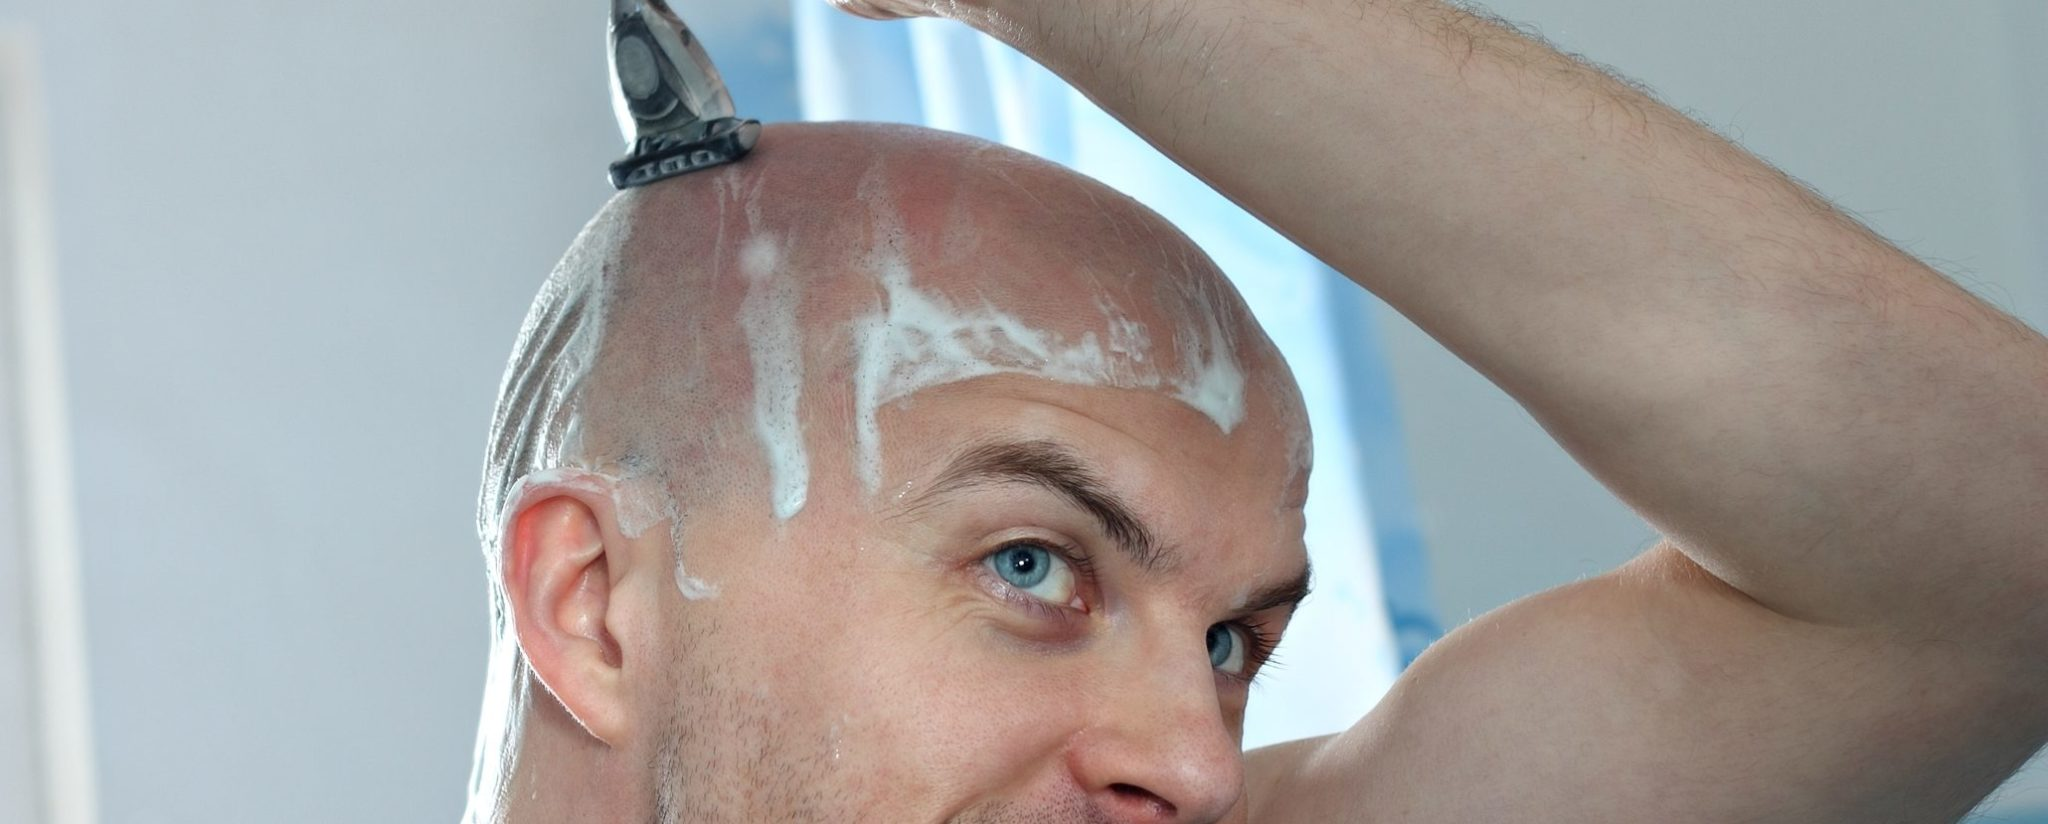 shaving-your-head